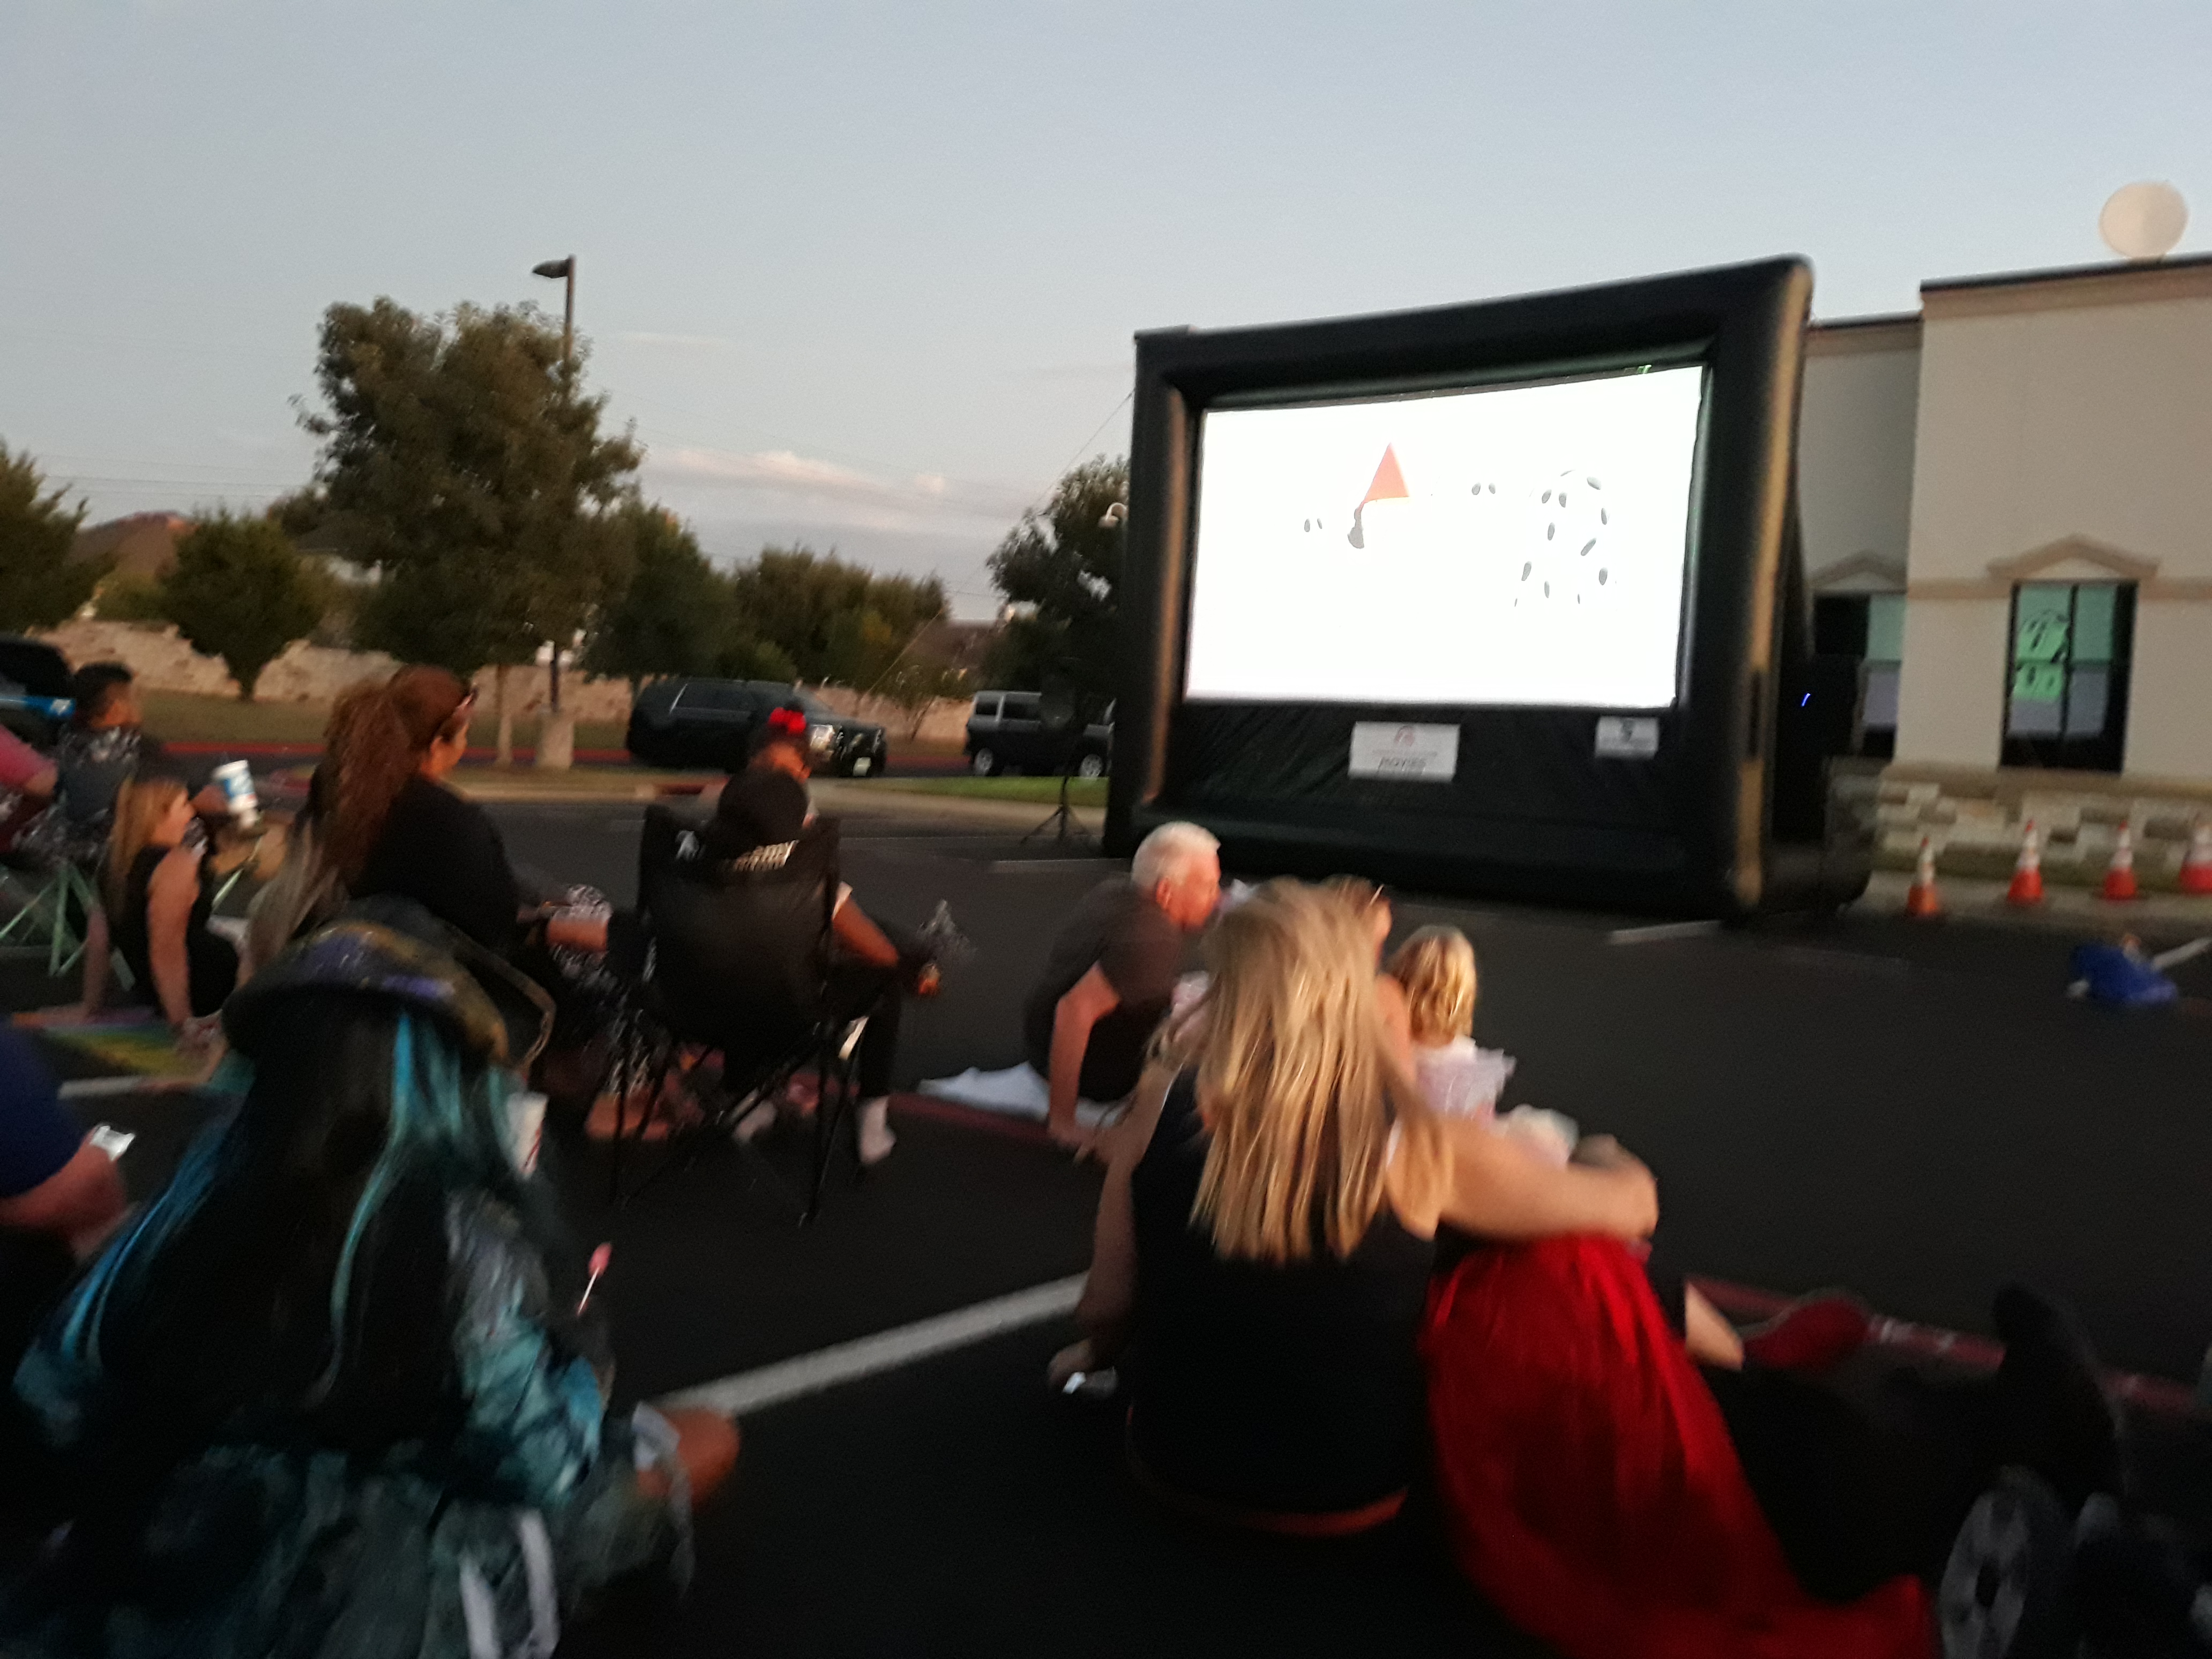 As the evening got dark, visitors got to watch the Great Pumpkin Charlie Brown movie presented by Constable Precinct 1.